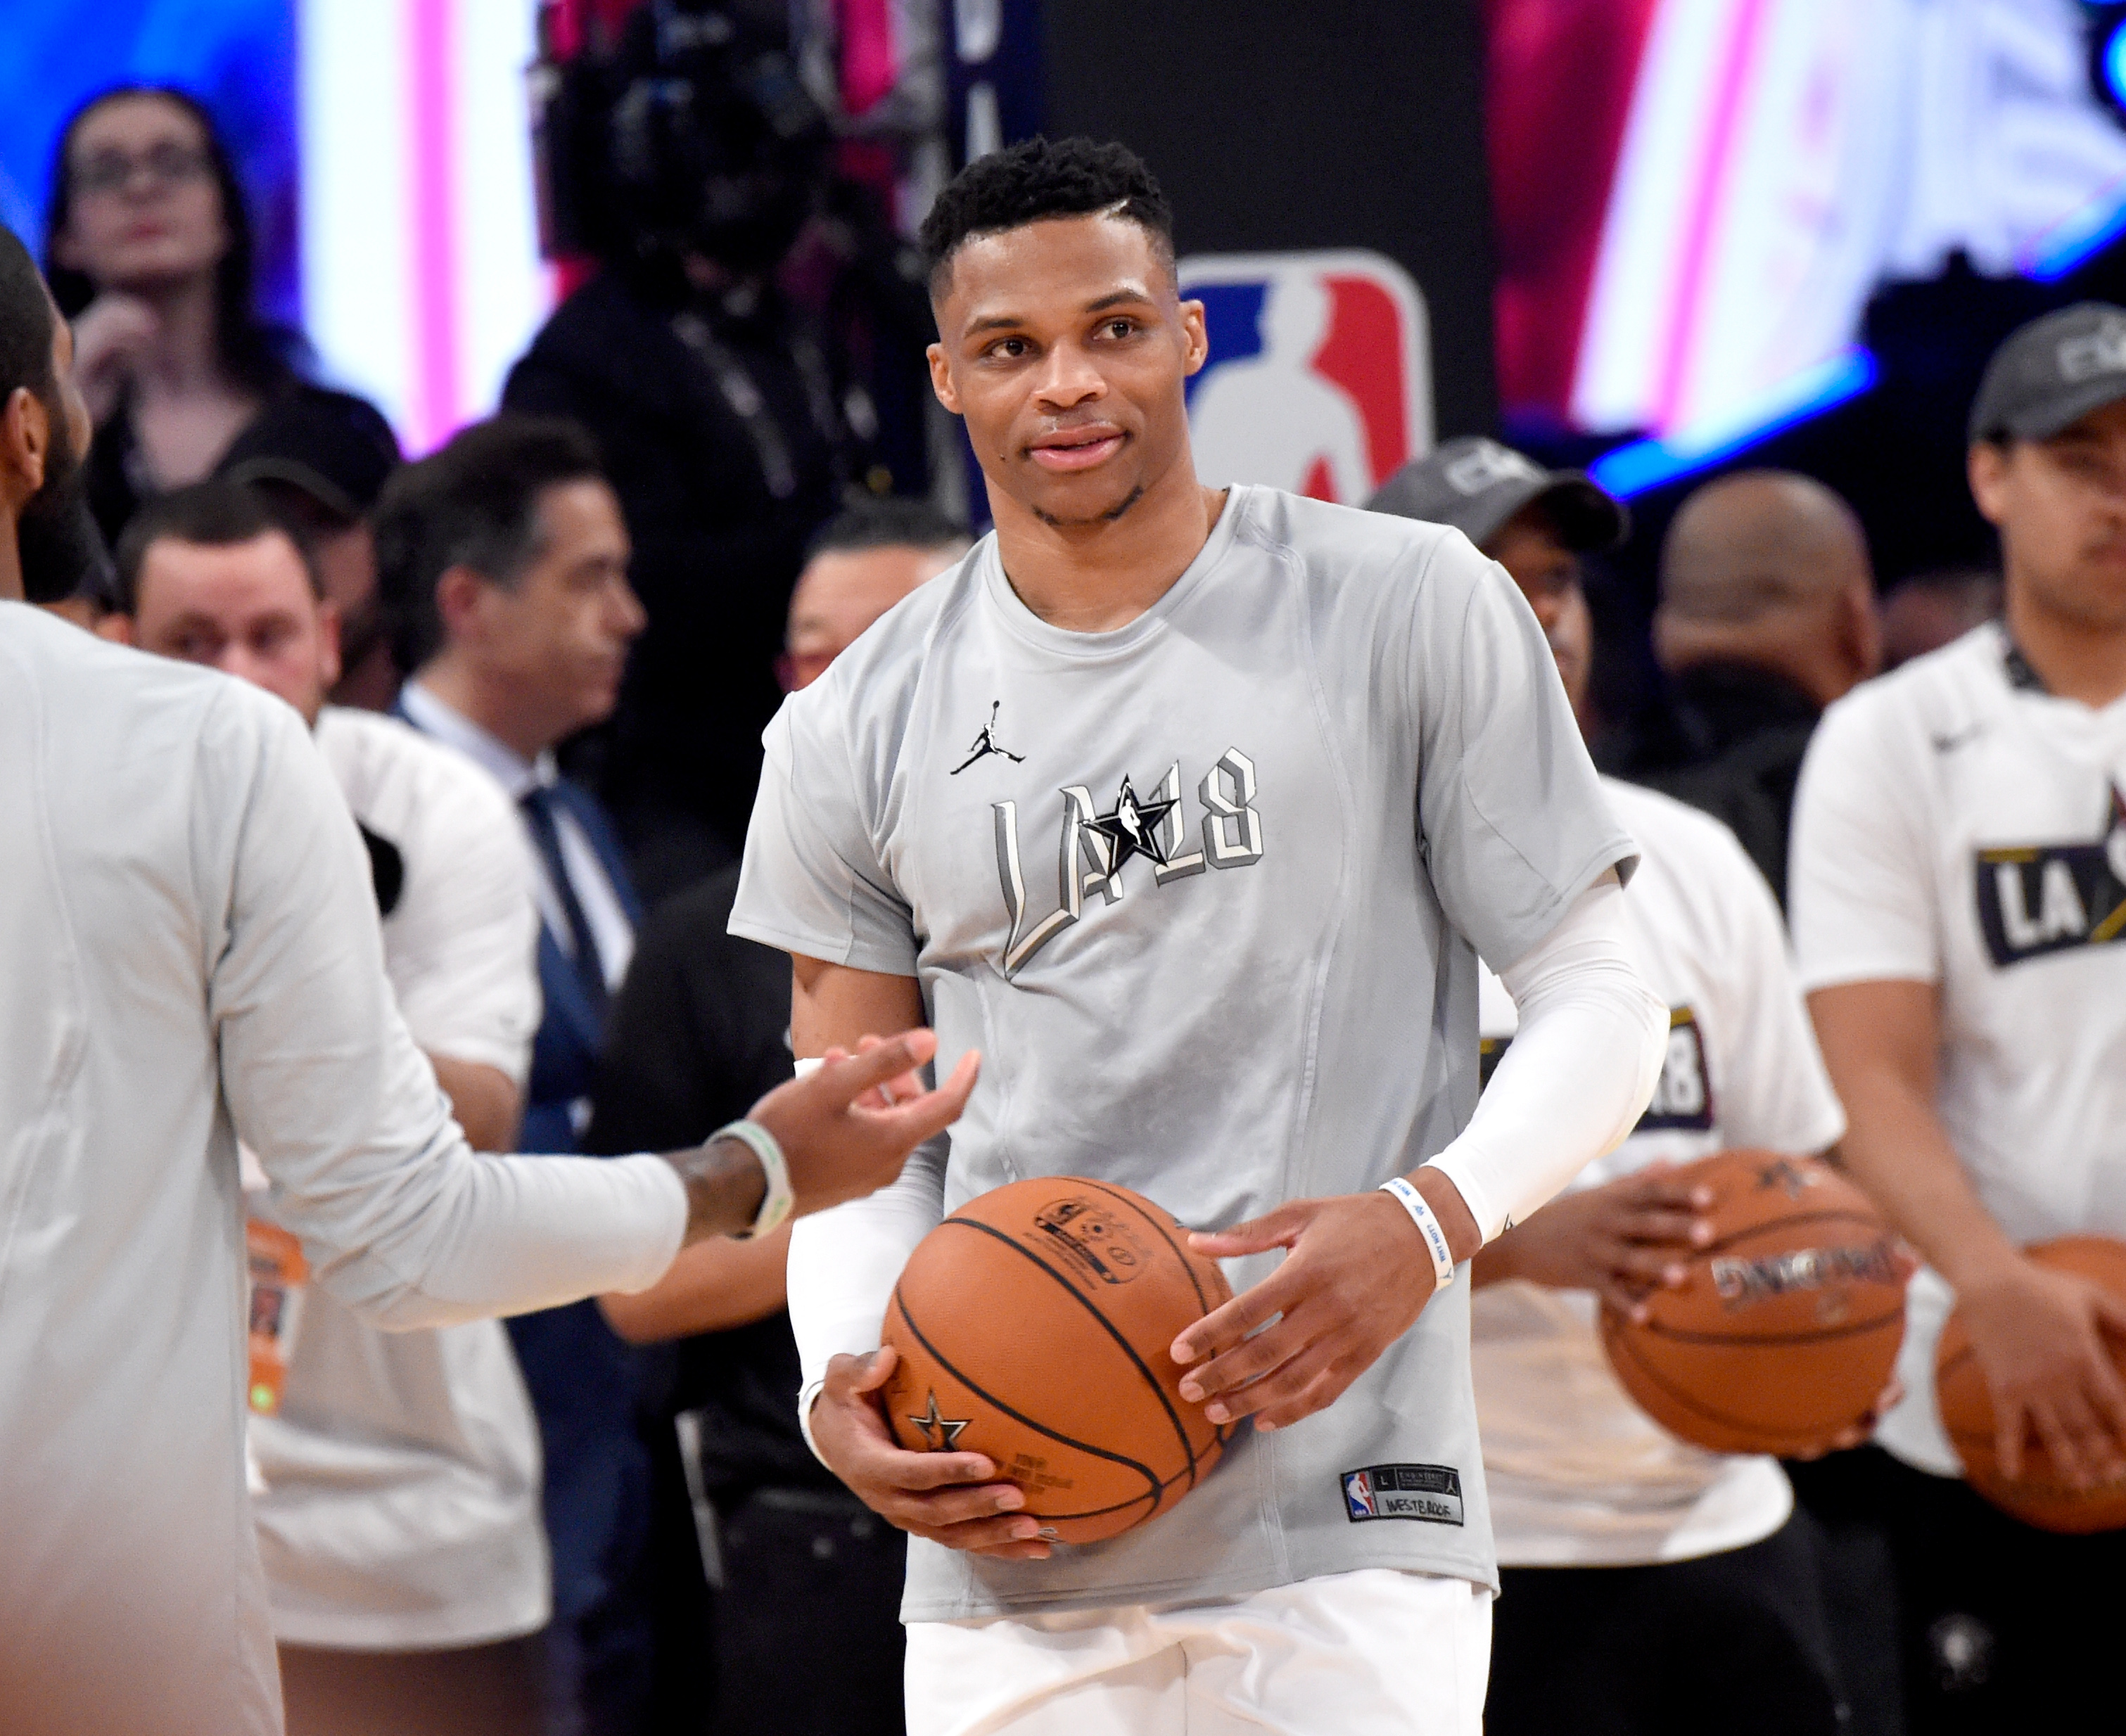 2018 nba all-star game roundup